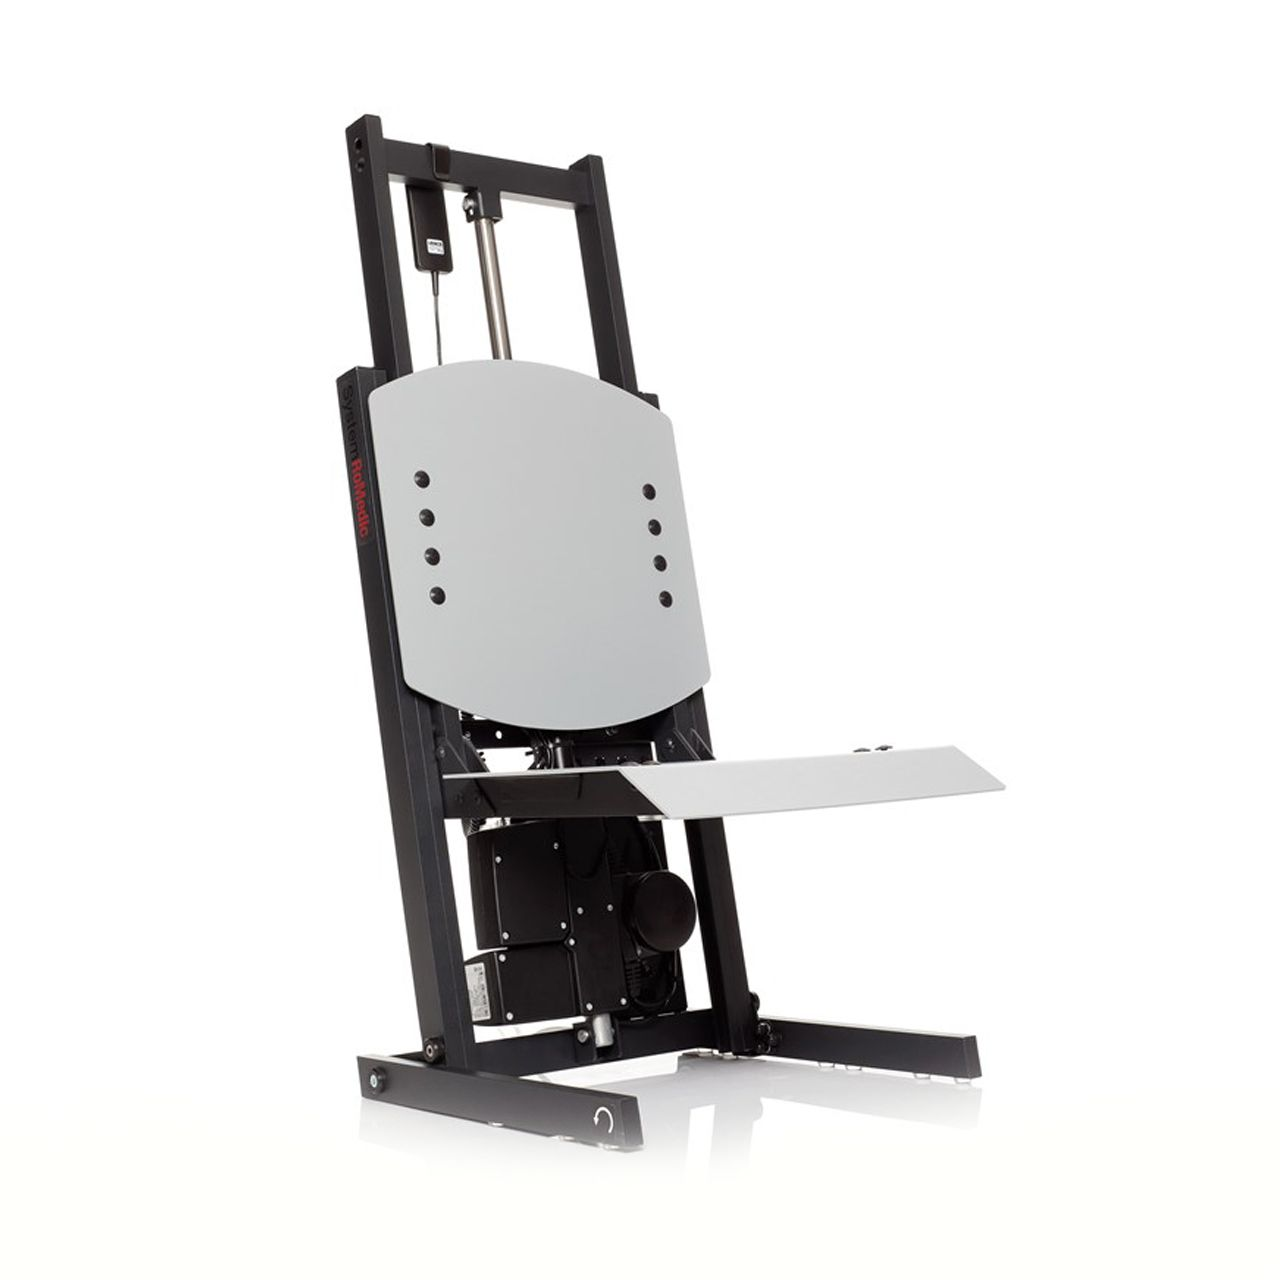 StandUp Liftstoel